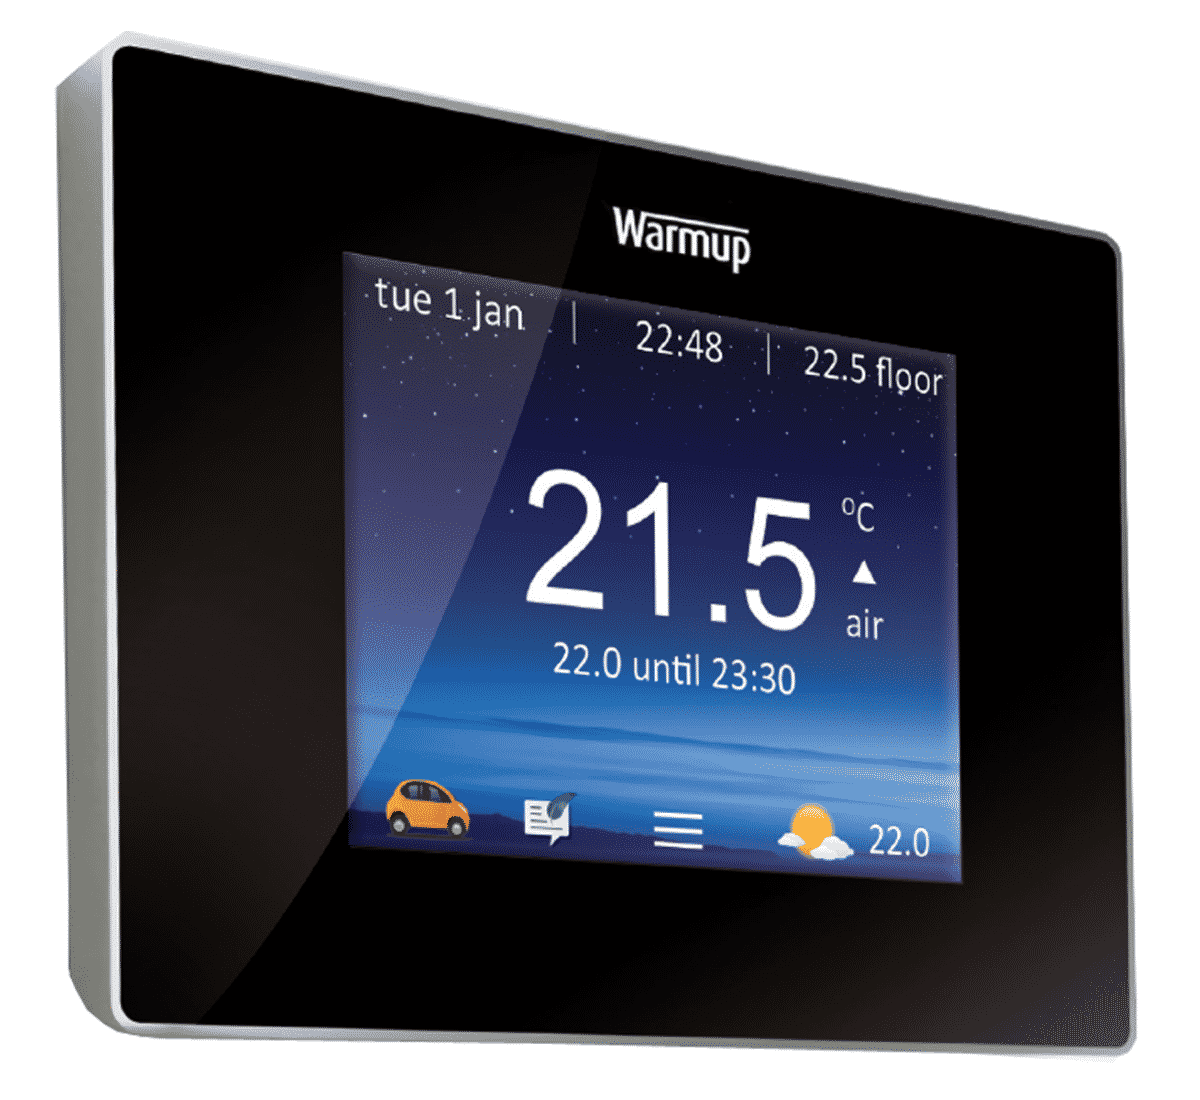 Warmup 4ie underfloor heating smart thermostat